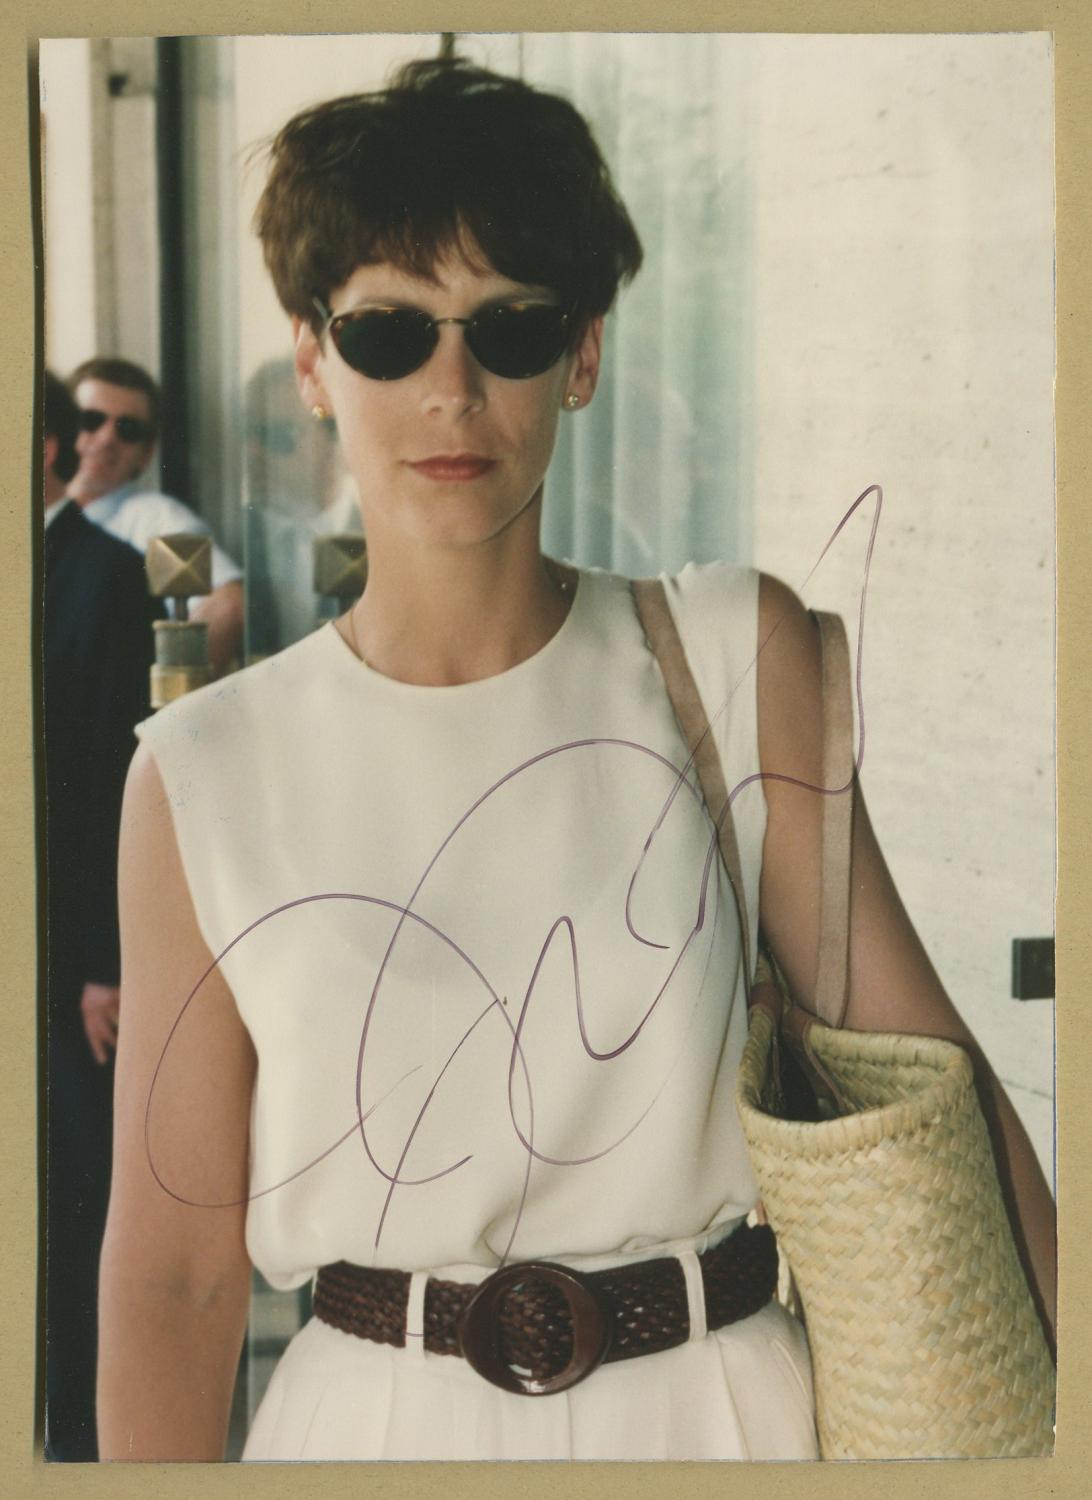 Jamie_Lee_Curtis__Authentic_signed_photo__Paris_80s_Jamie_Lee_Curtis__American_actress_author_and_activist_Très_bon